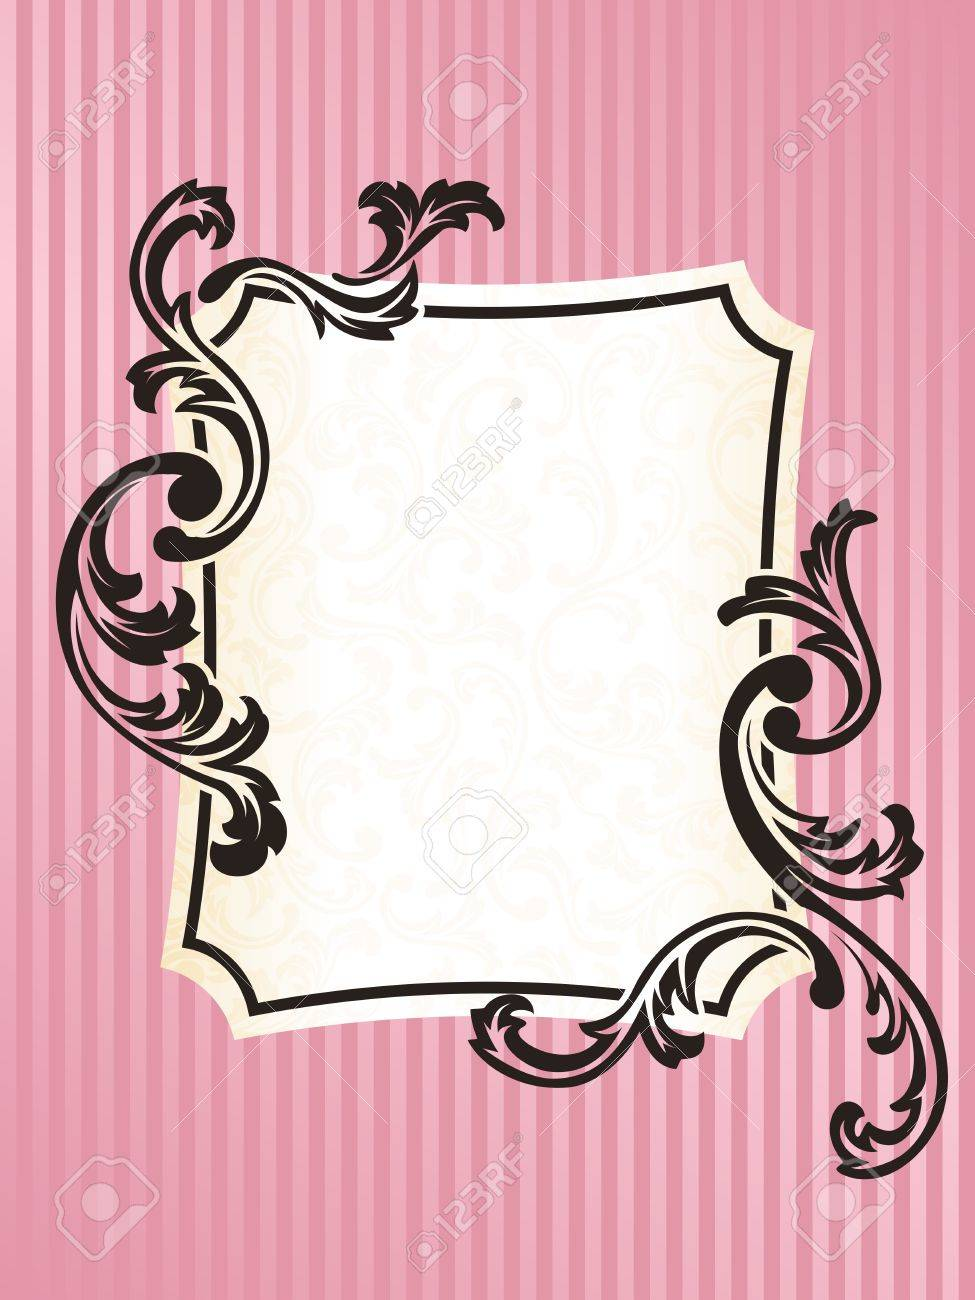 easy frame designs photo elegant rectangular frame design inspired by french rococo style graphics are